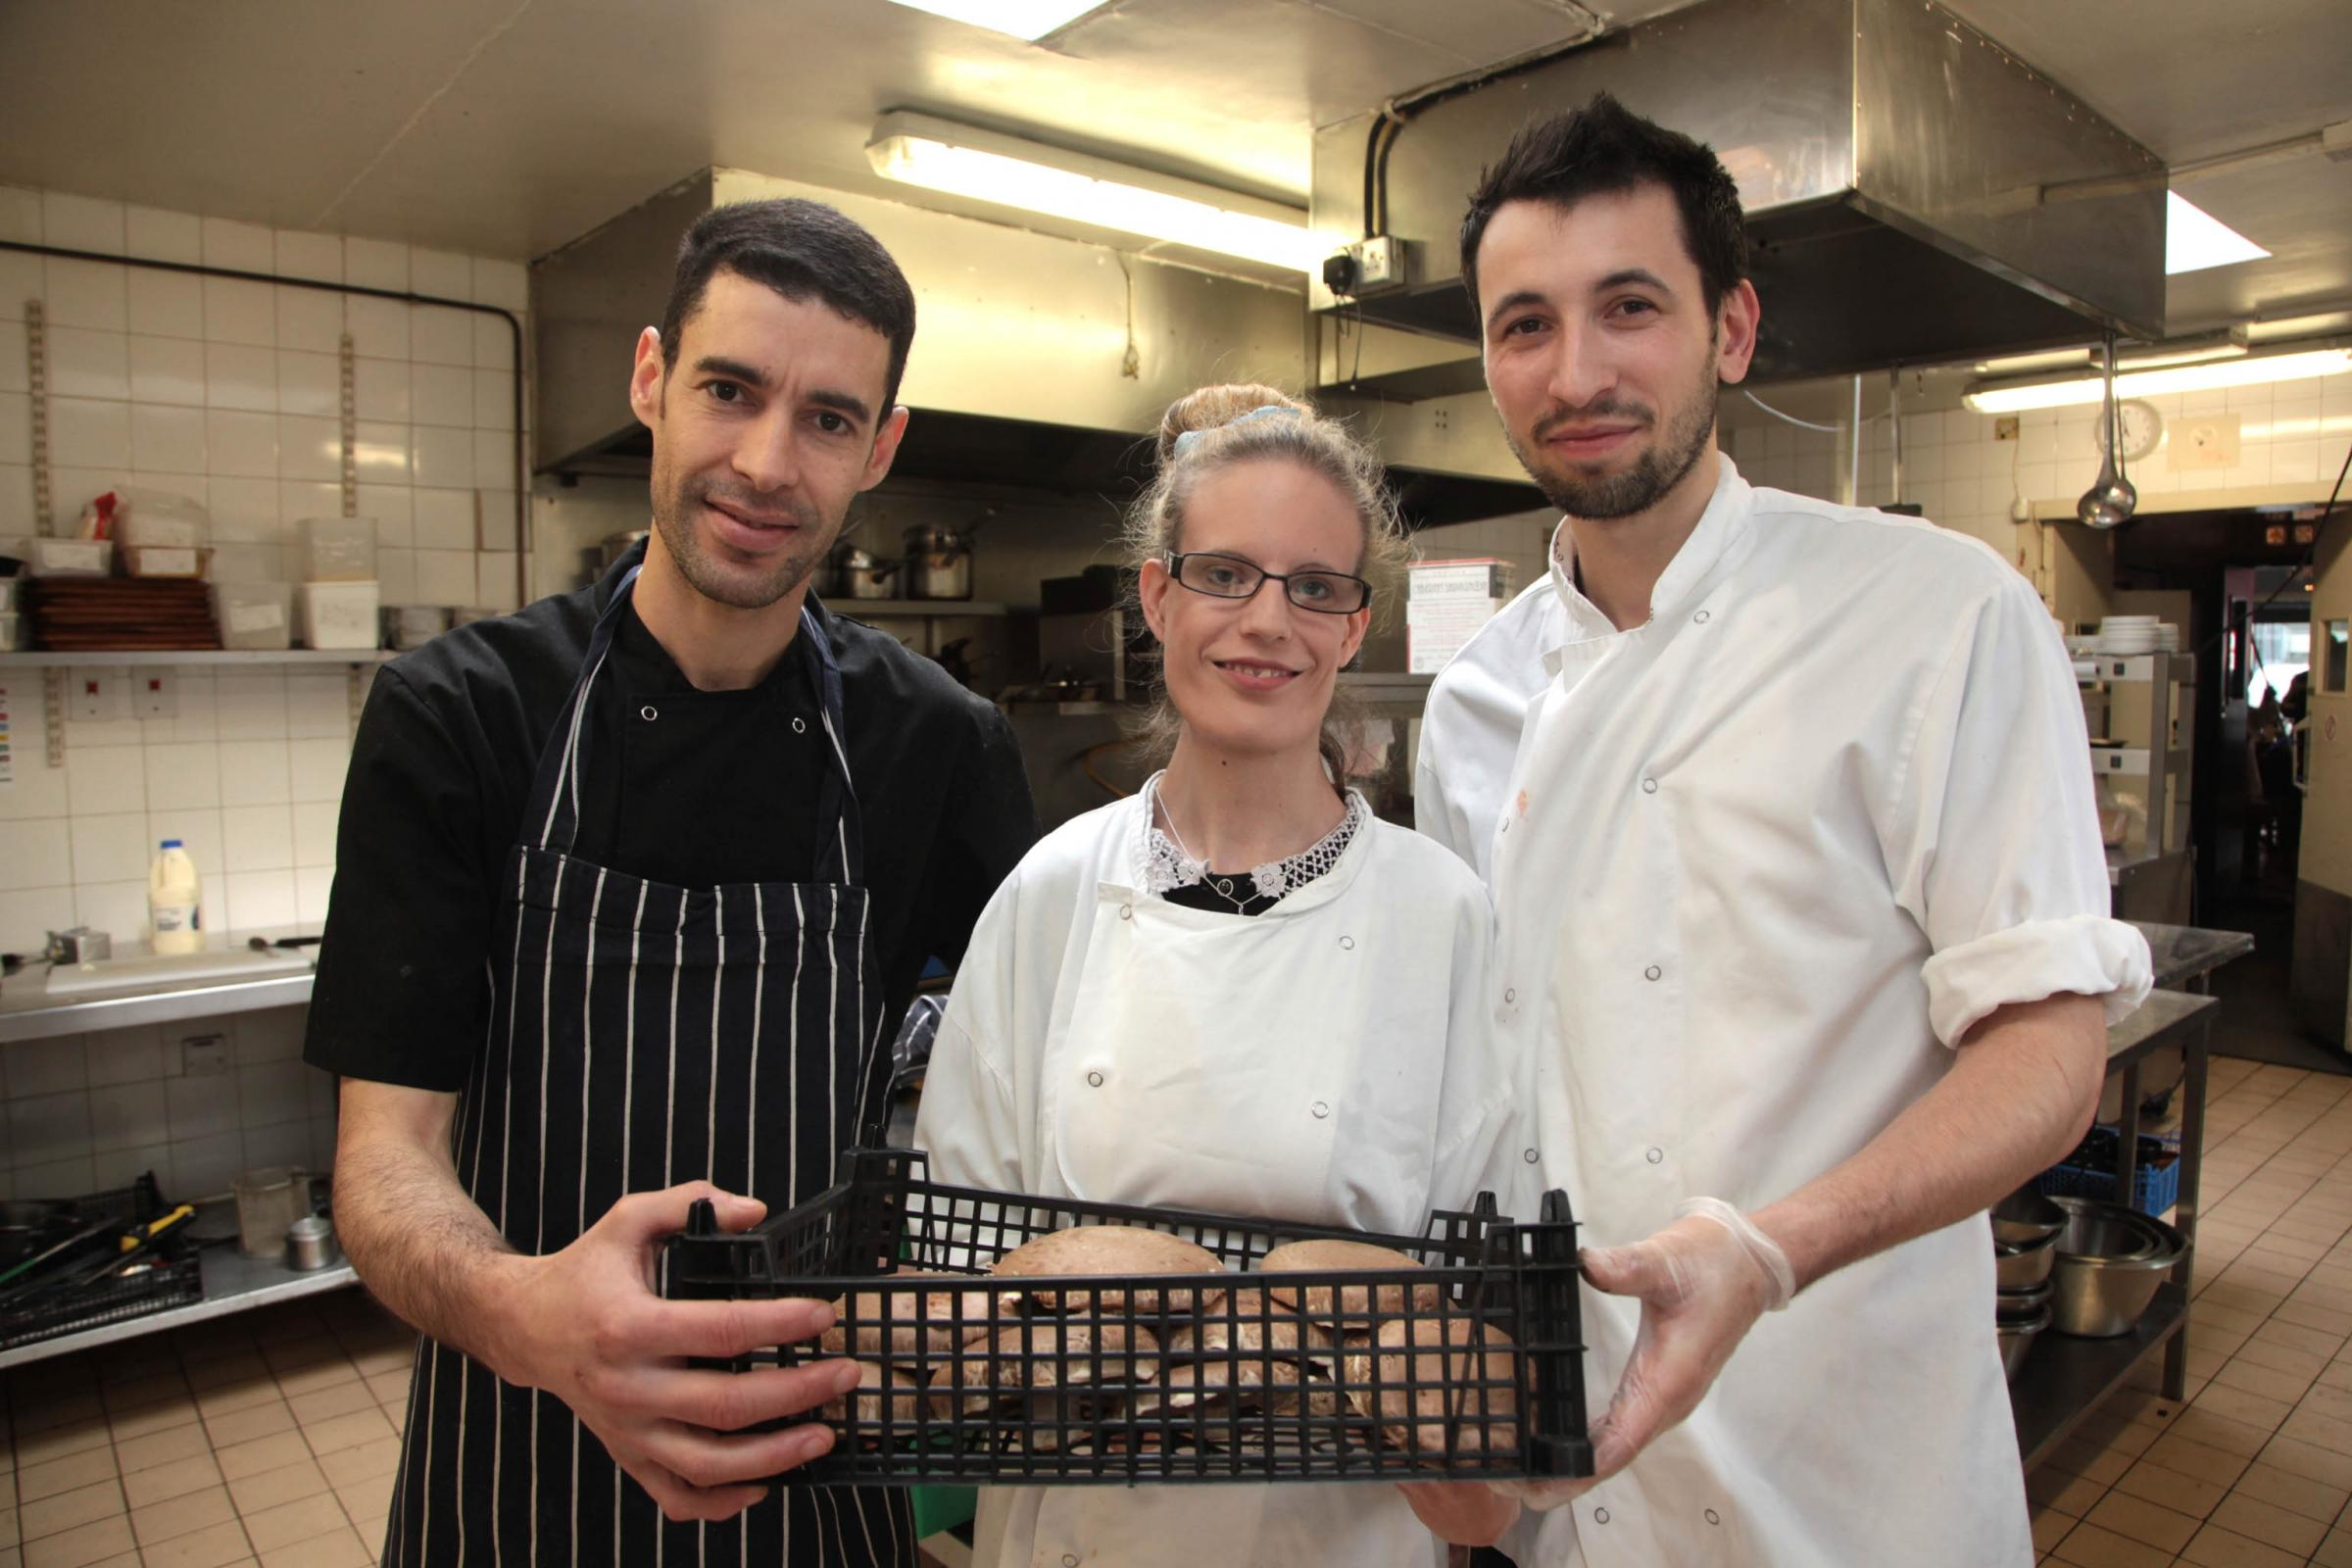 Surbiton restaurateur offers work experience to people with disabilities